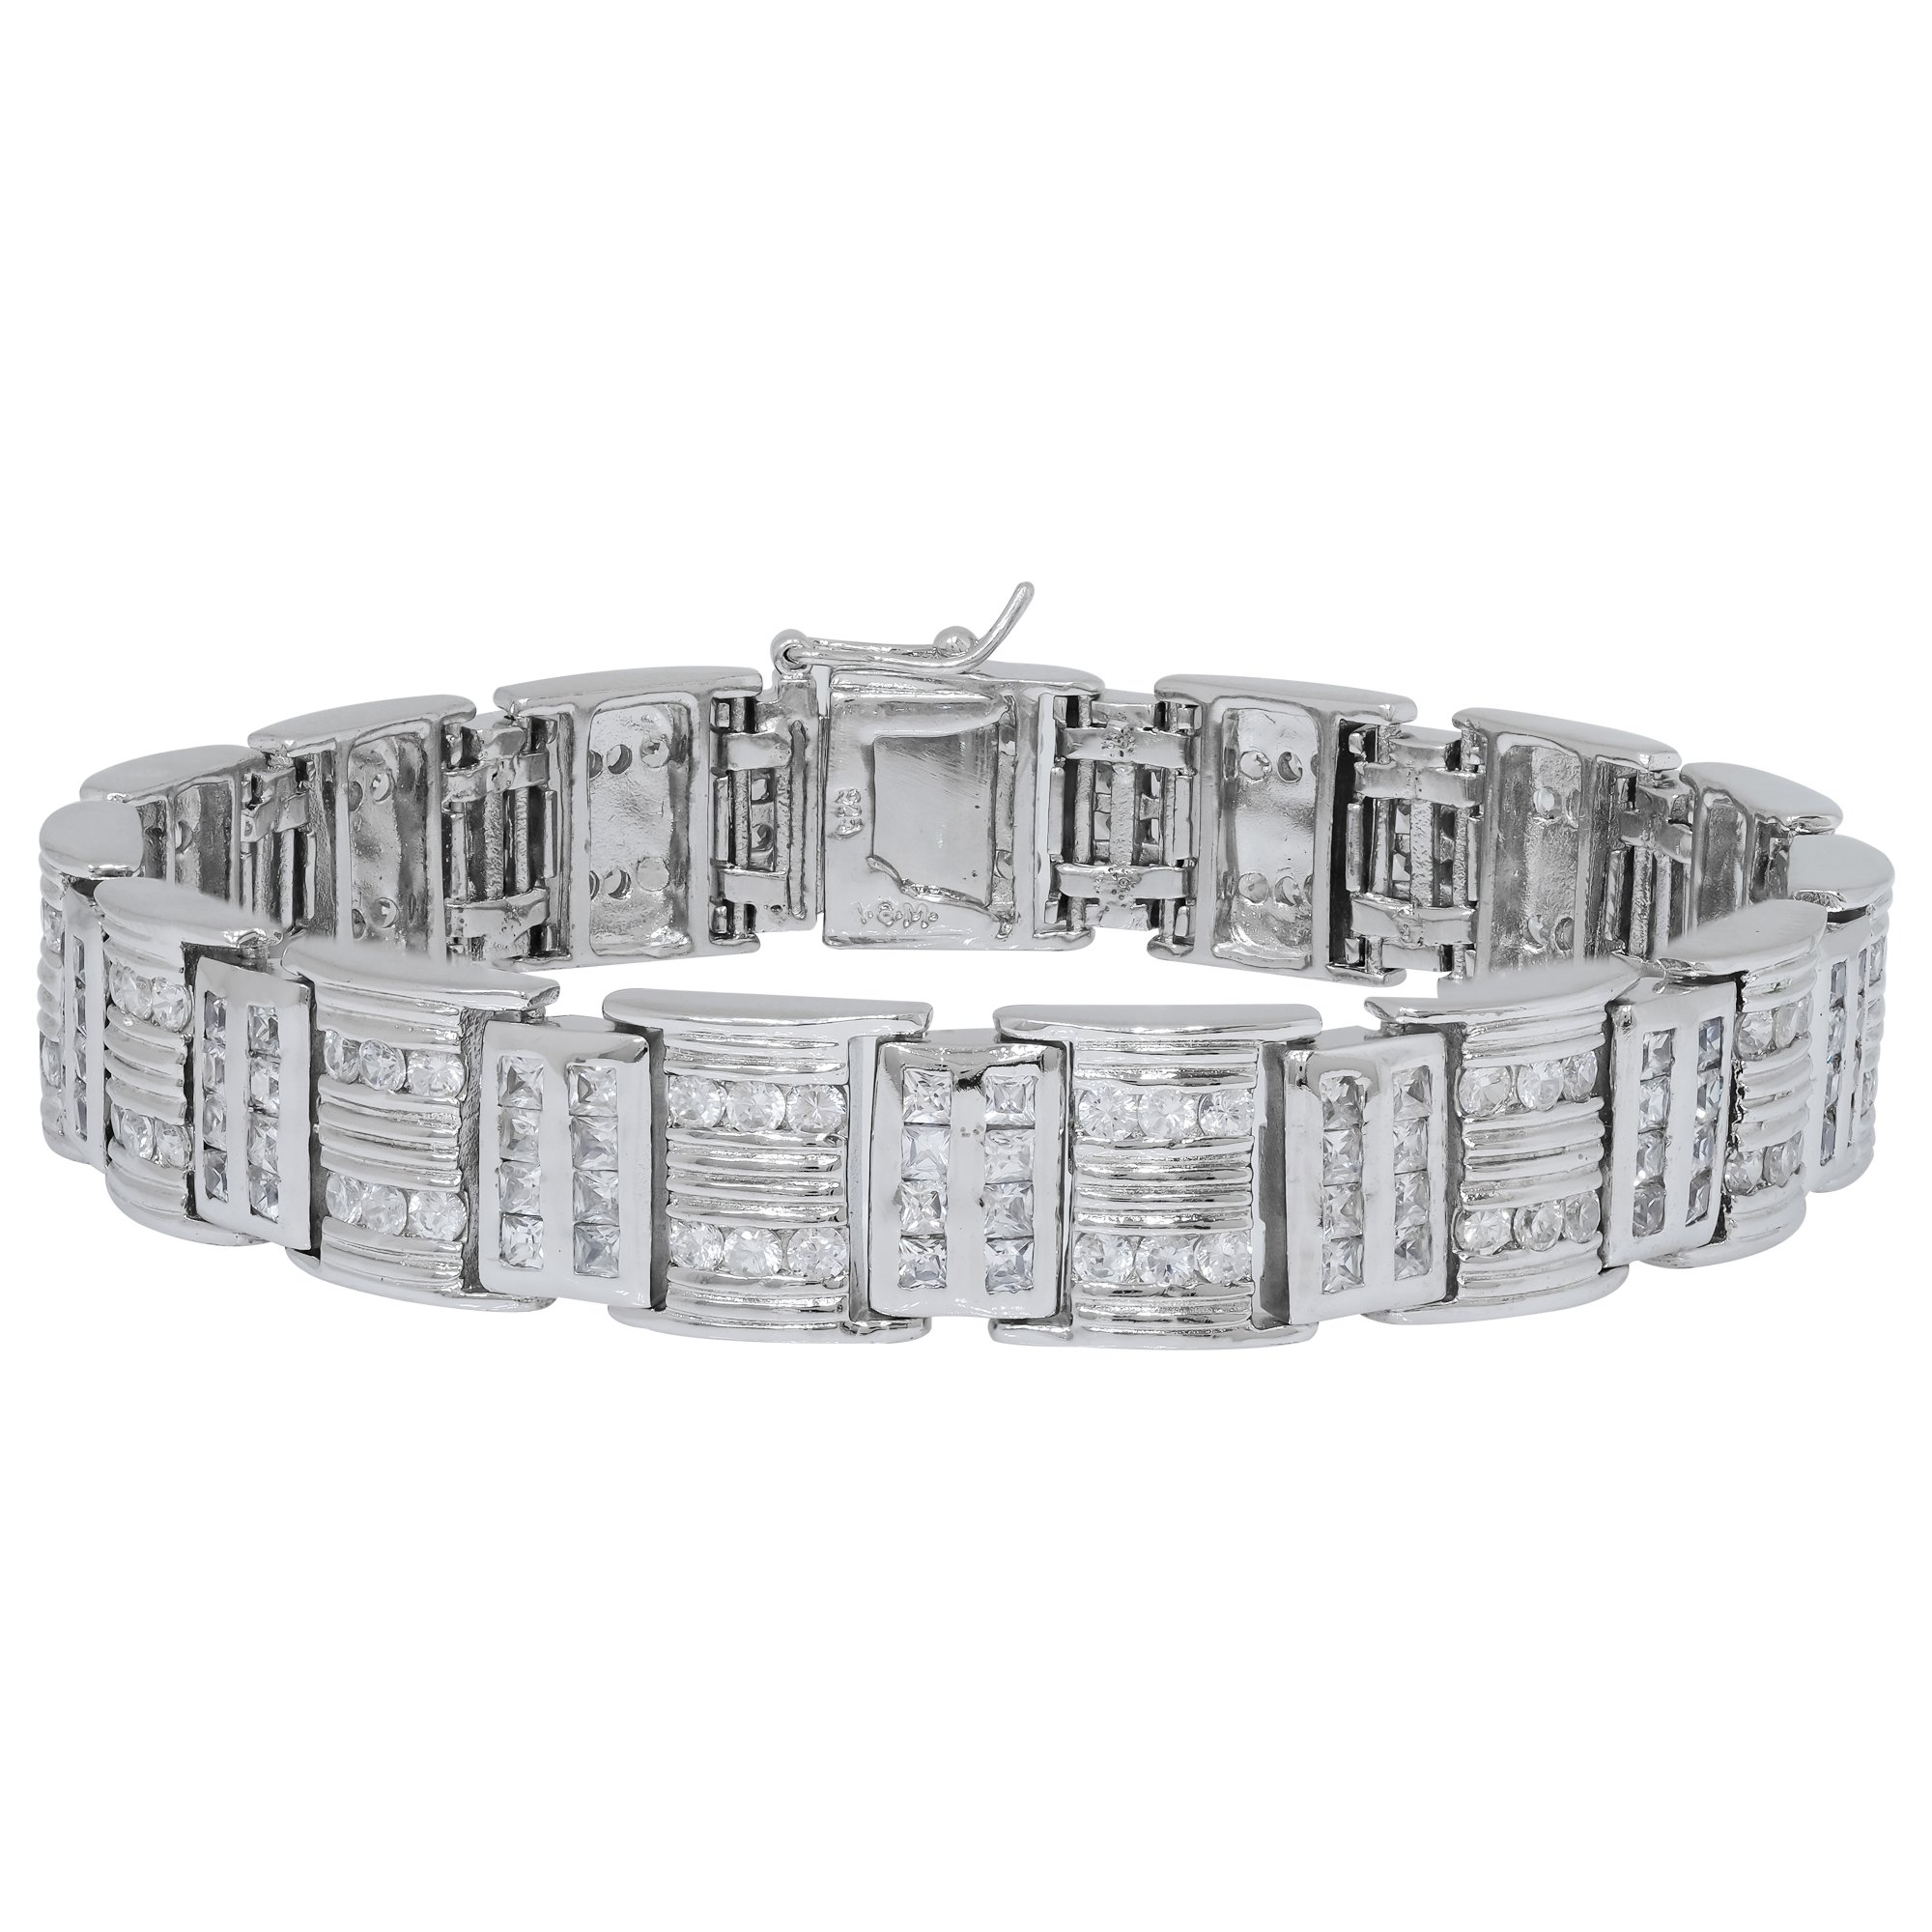 Men's Fancy Sterling Silver .925 Bracelet with Channel-Set Princess and Round Cubic Zirconia (CZ) Stones, Box Lock, Platinum Plated. Sizes 8'' 9''. By Sterling Manufacturers (8.00)